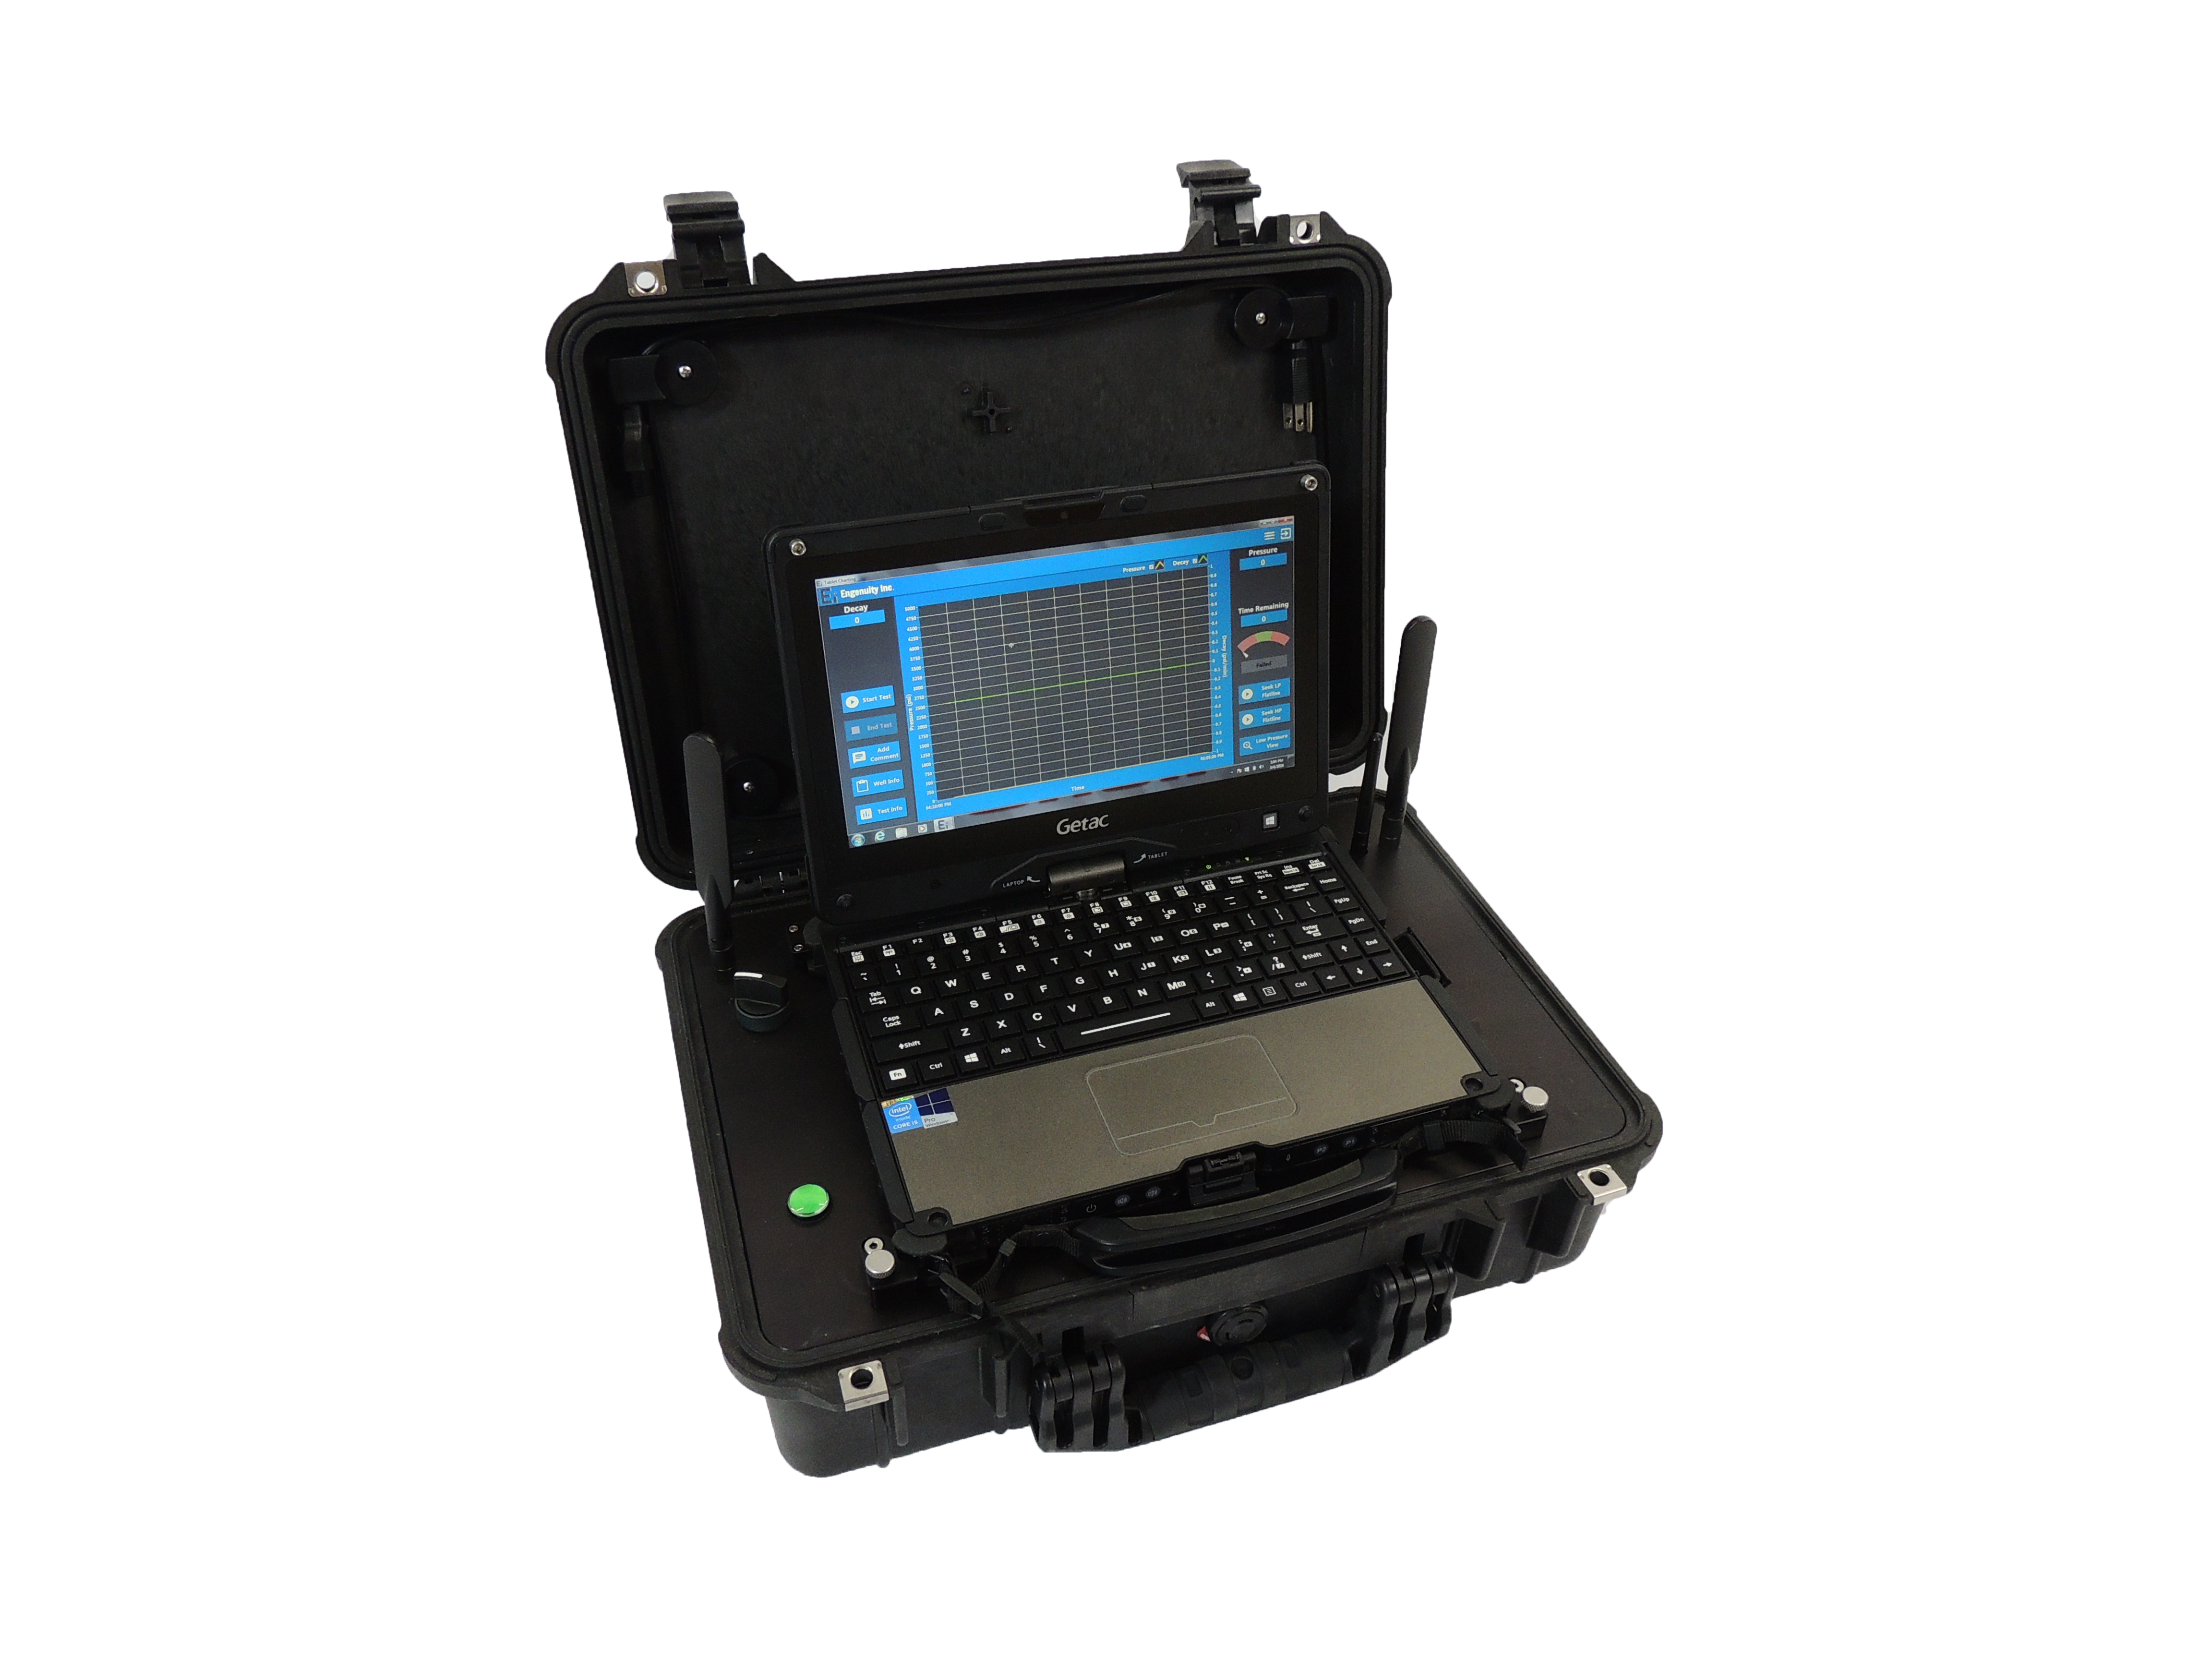 With Ei S Digital Chart Recorder You Can Record And Display Pressure Test Data The Ez Utilizes Precision Recording